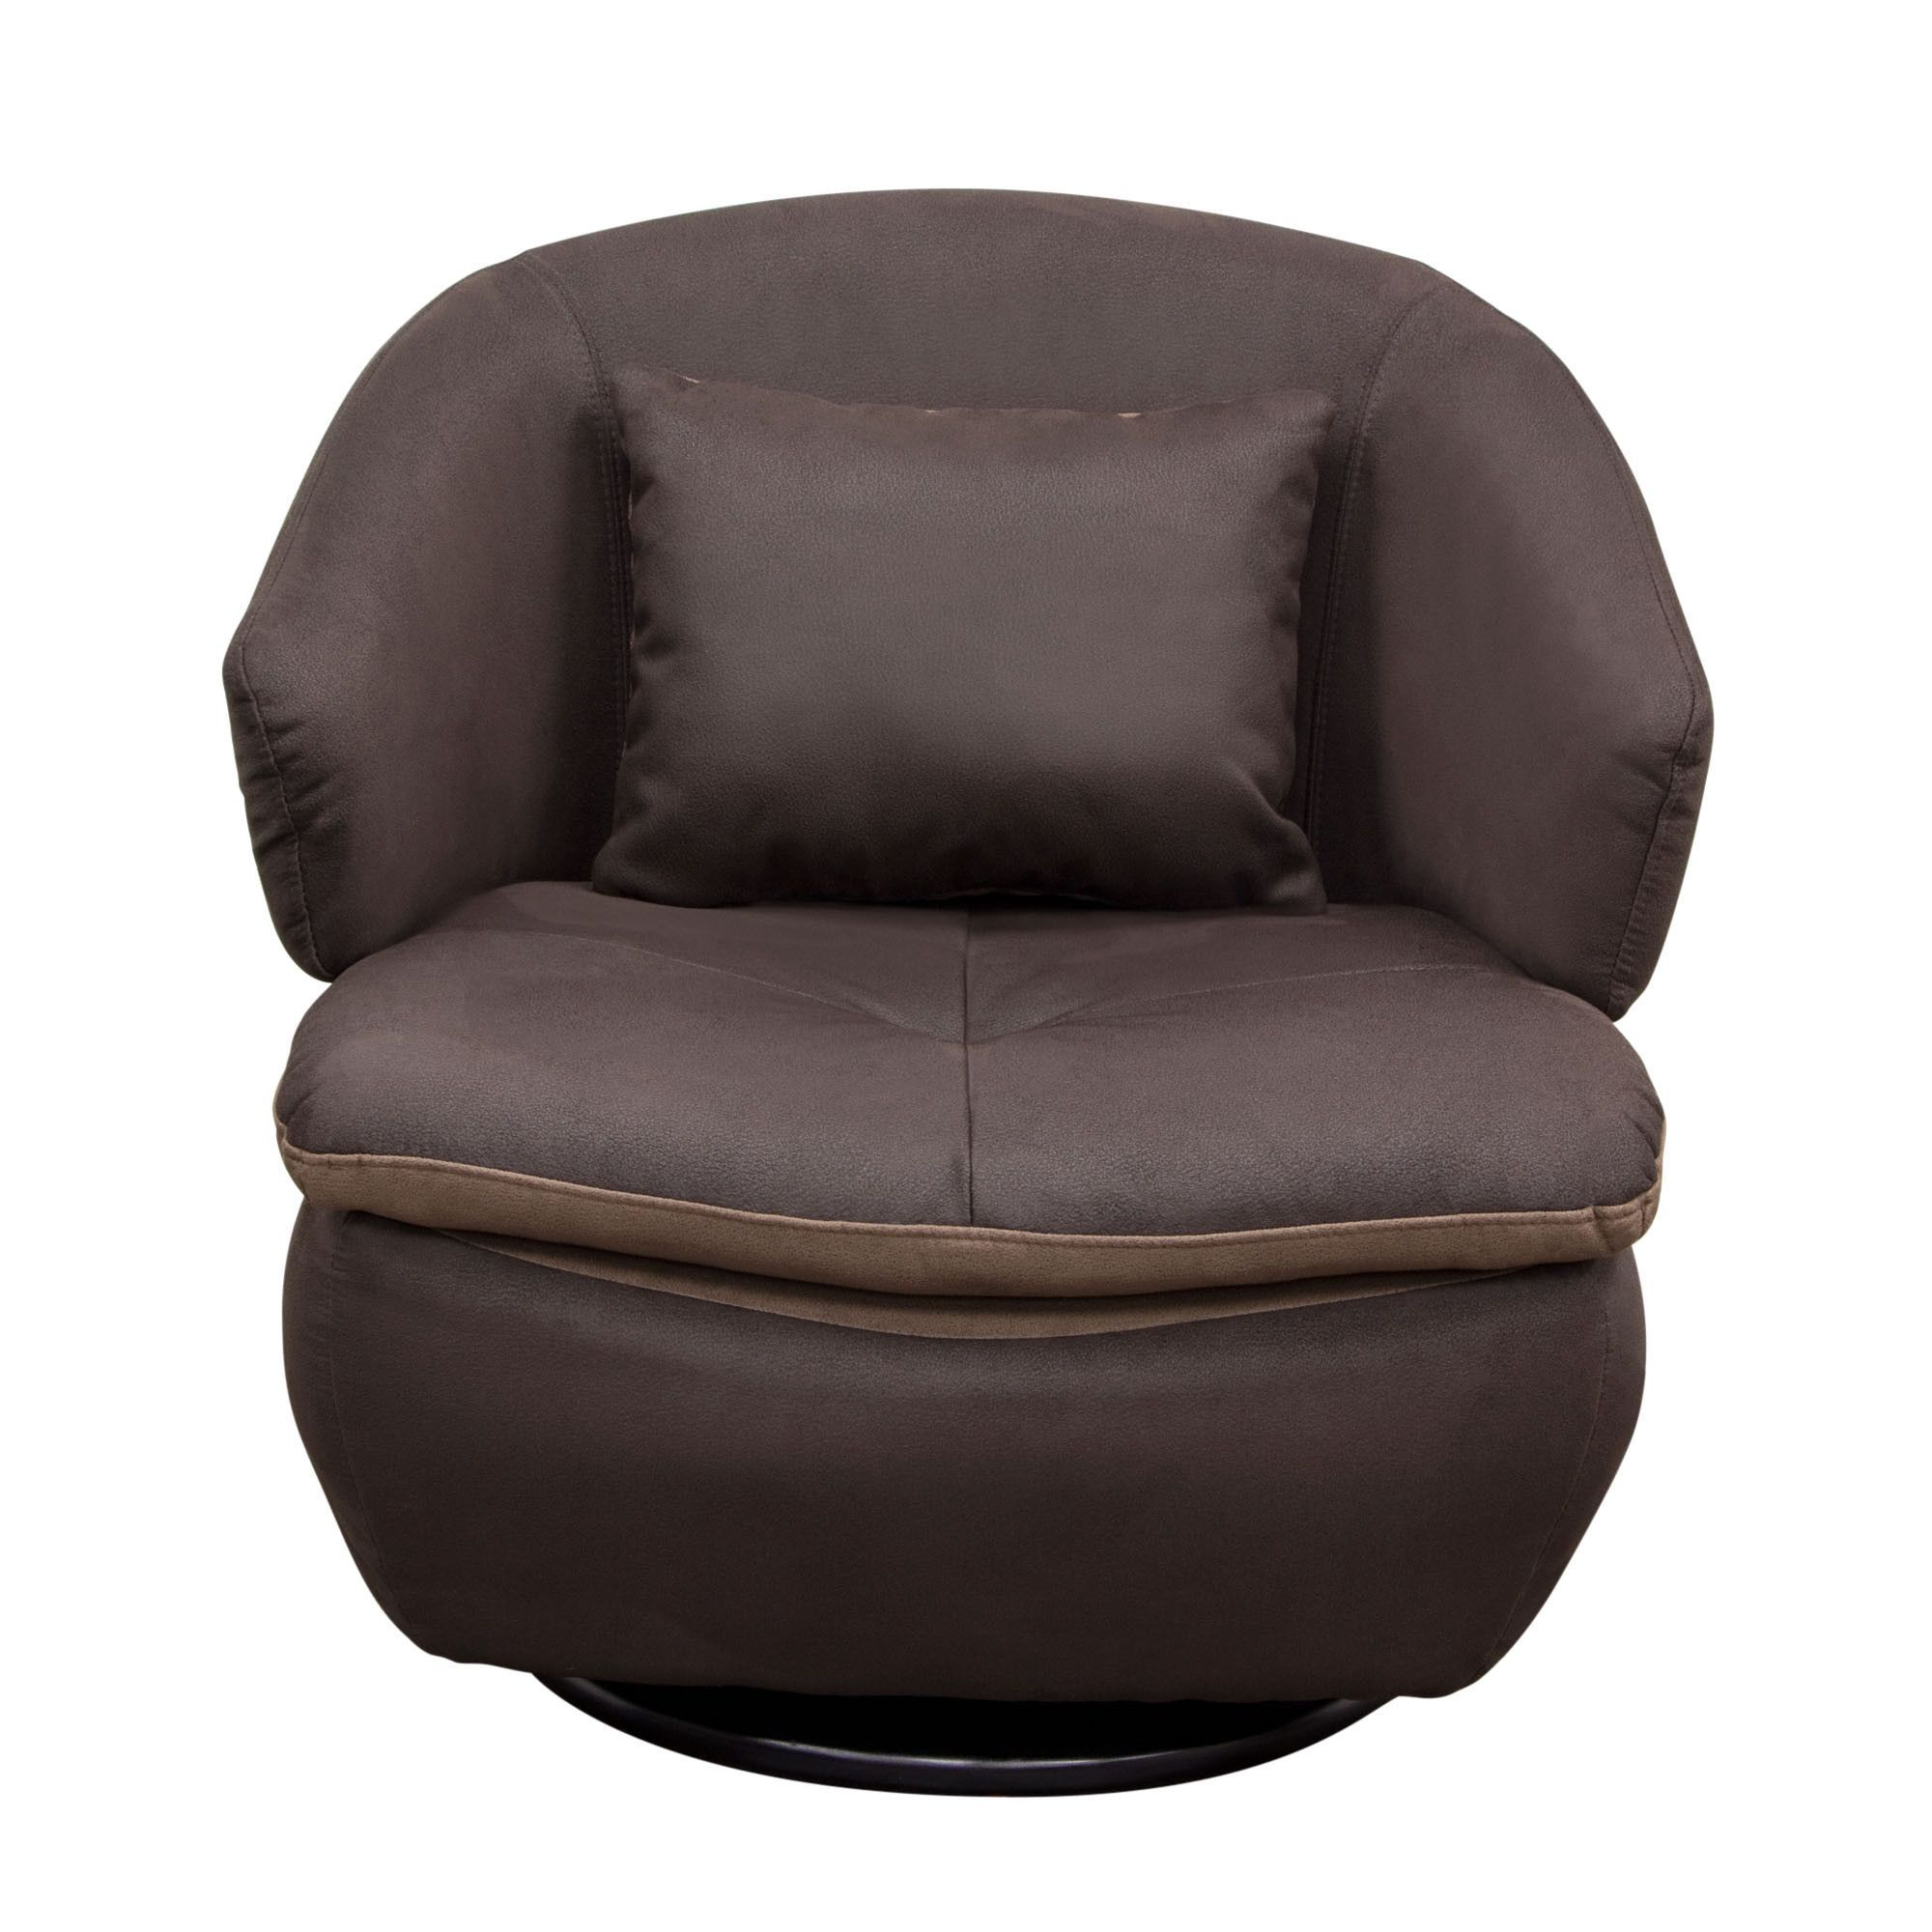 Rio Swivel Accent Chair In Brown Fabricdiamond Sofa | Products Throughout Twirl Swivel Accent Chairs (Image 17 of 25)